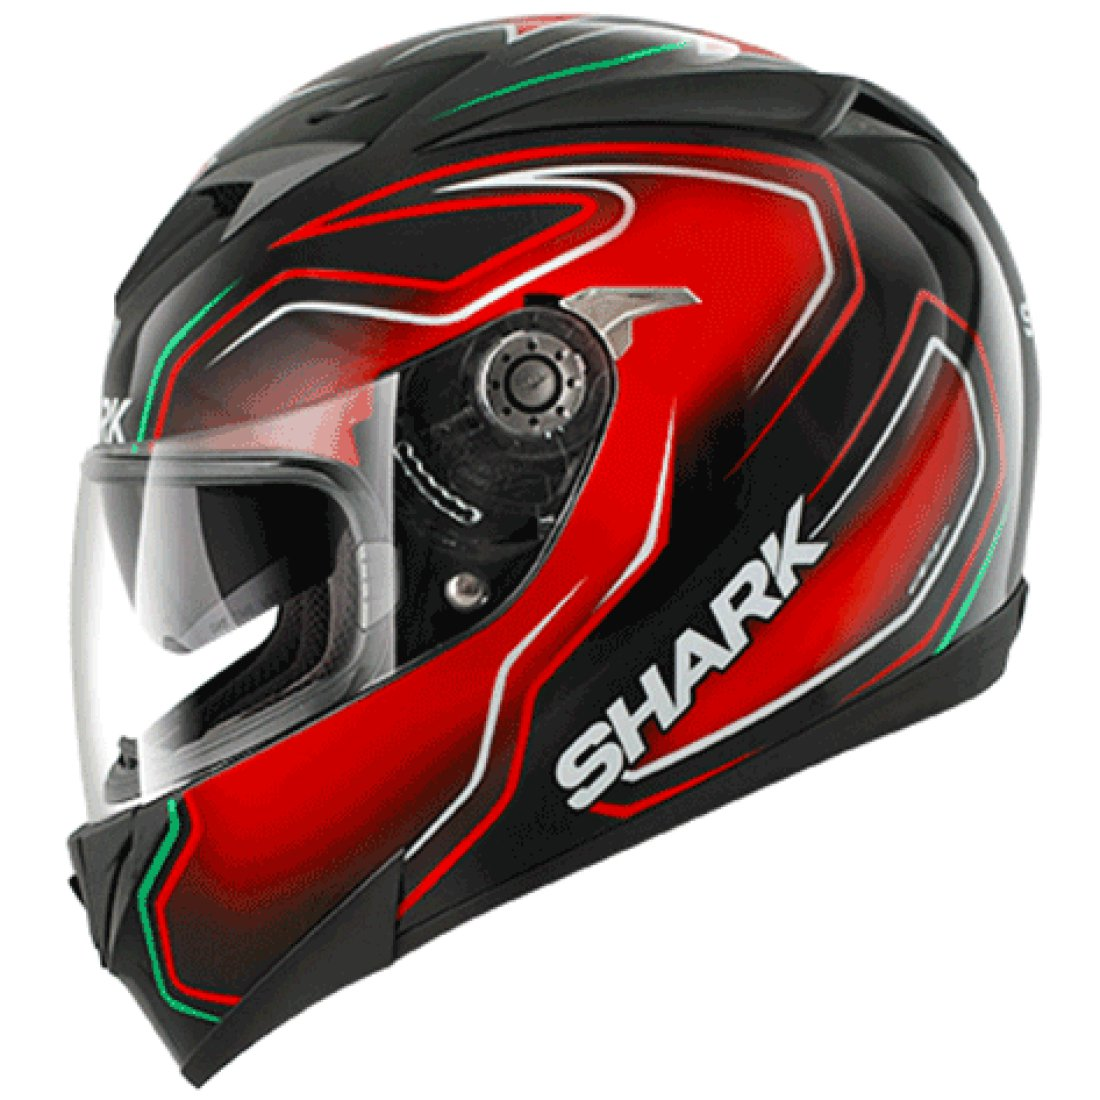 shark s700 s guintoli pinlock n r v helmet motocard. Black Bedroom Furniture Sets. Home Design Ideas